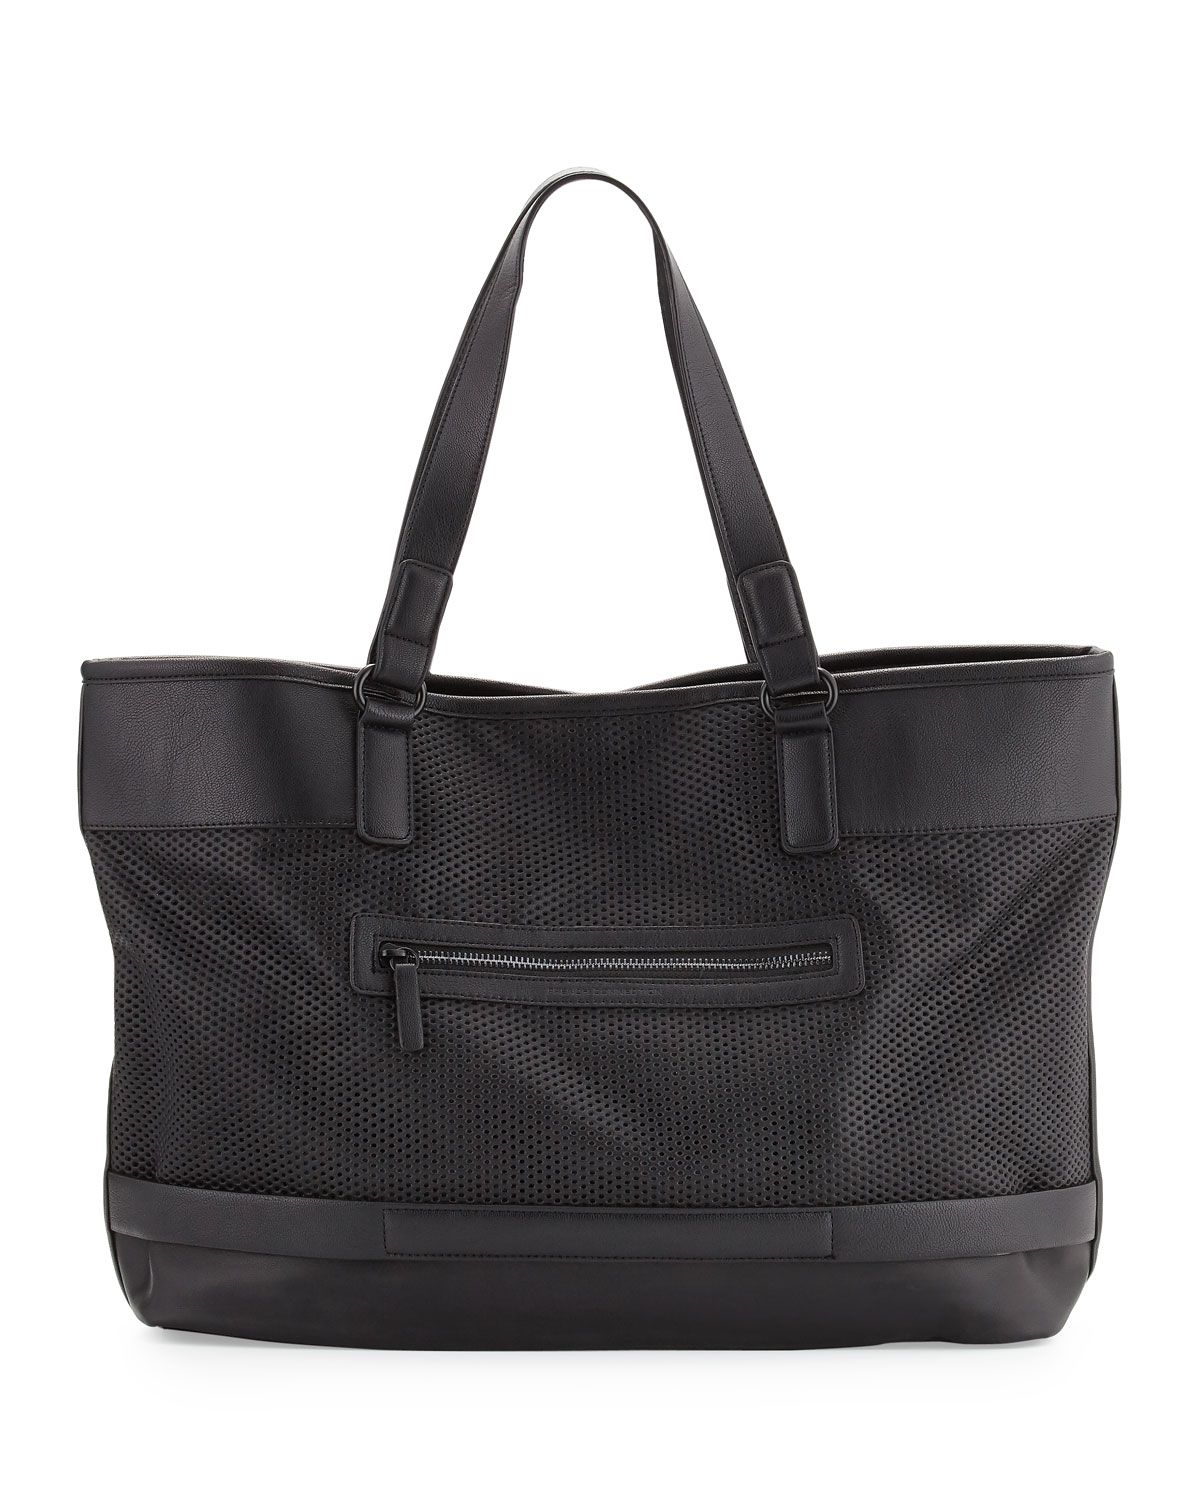 French Connection Edie Perforated Tote Bag, Black, Women's